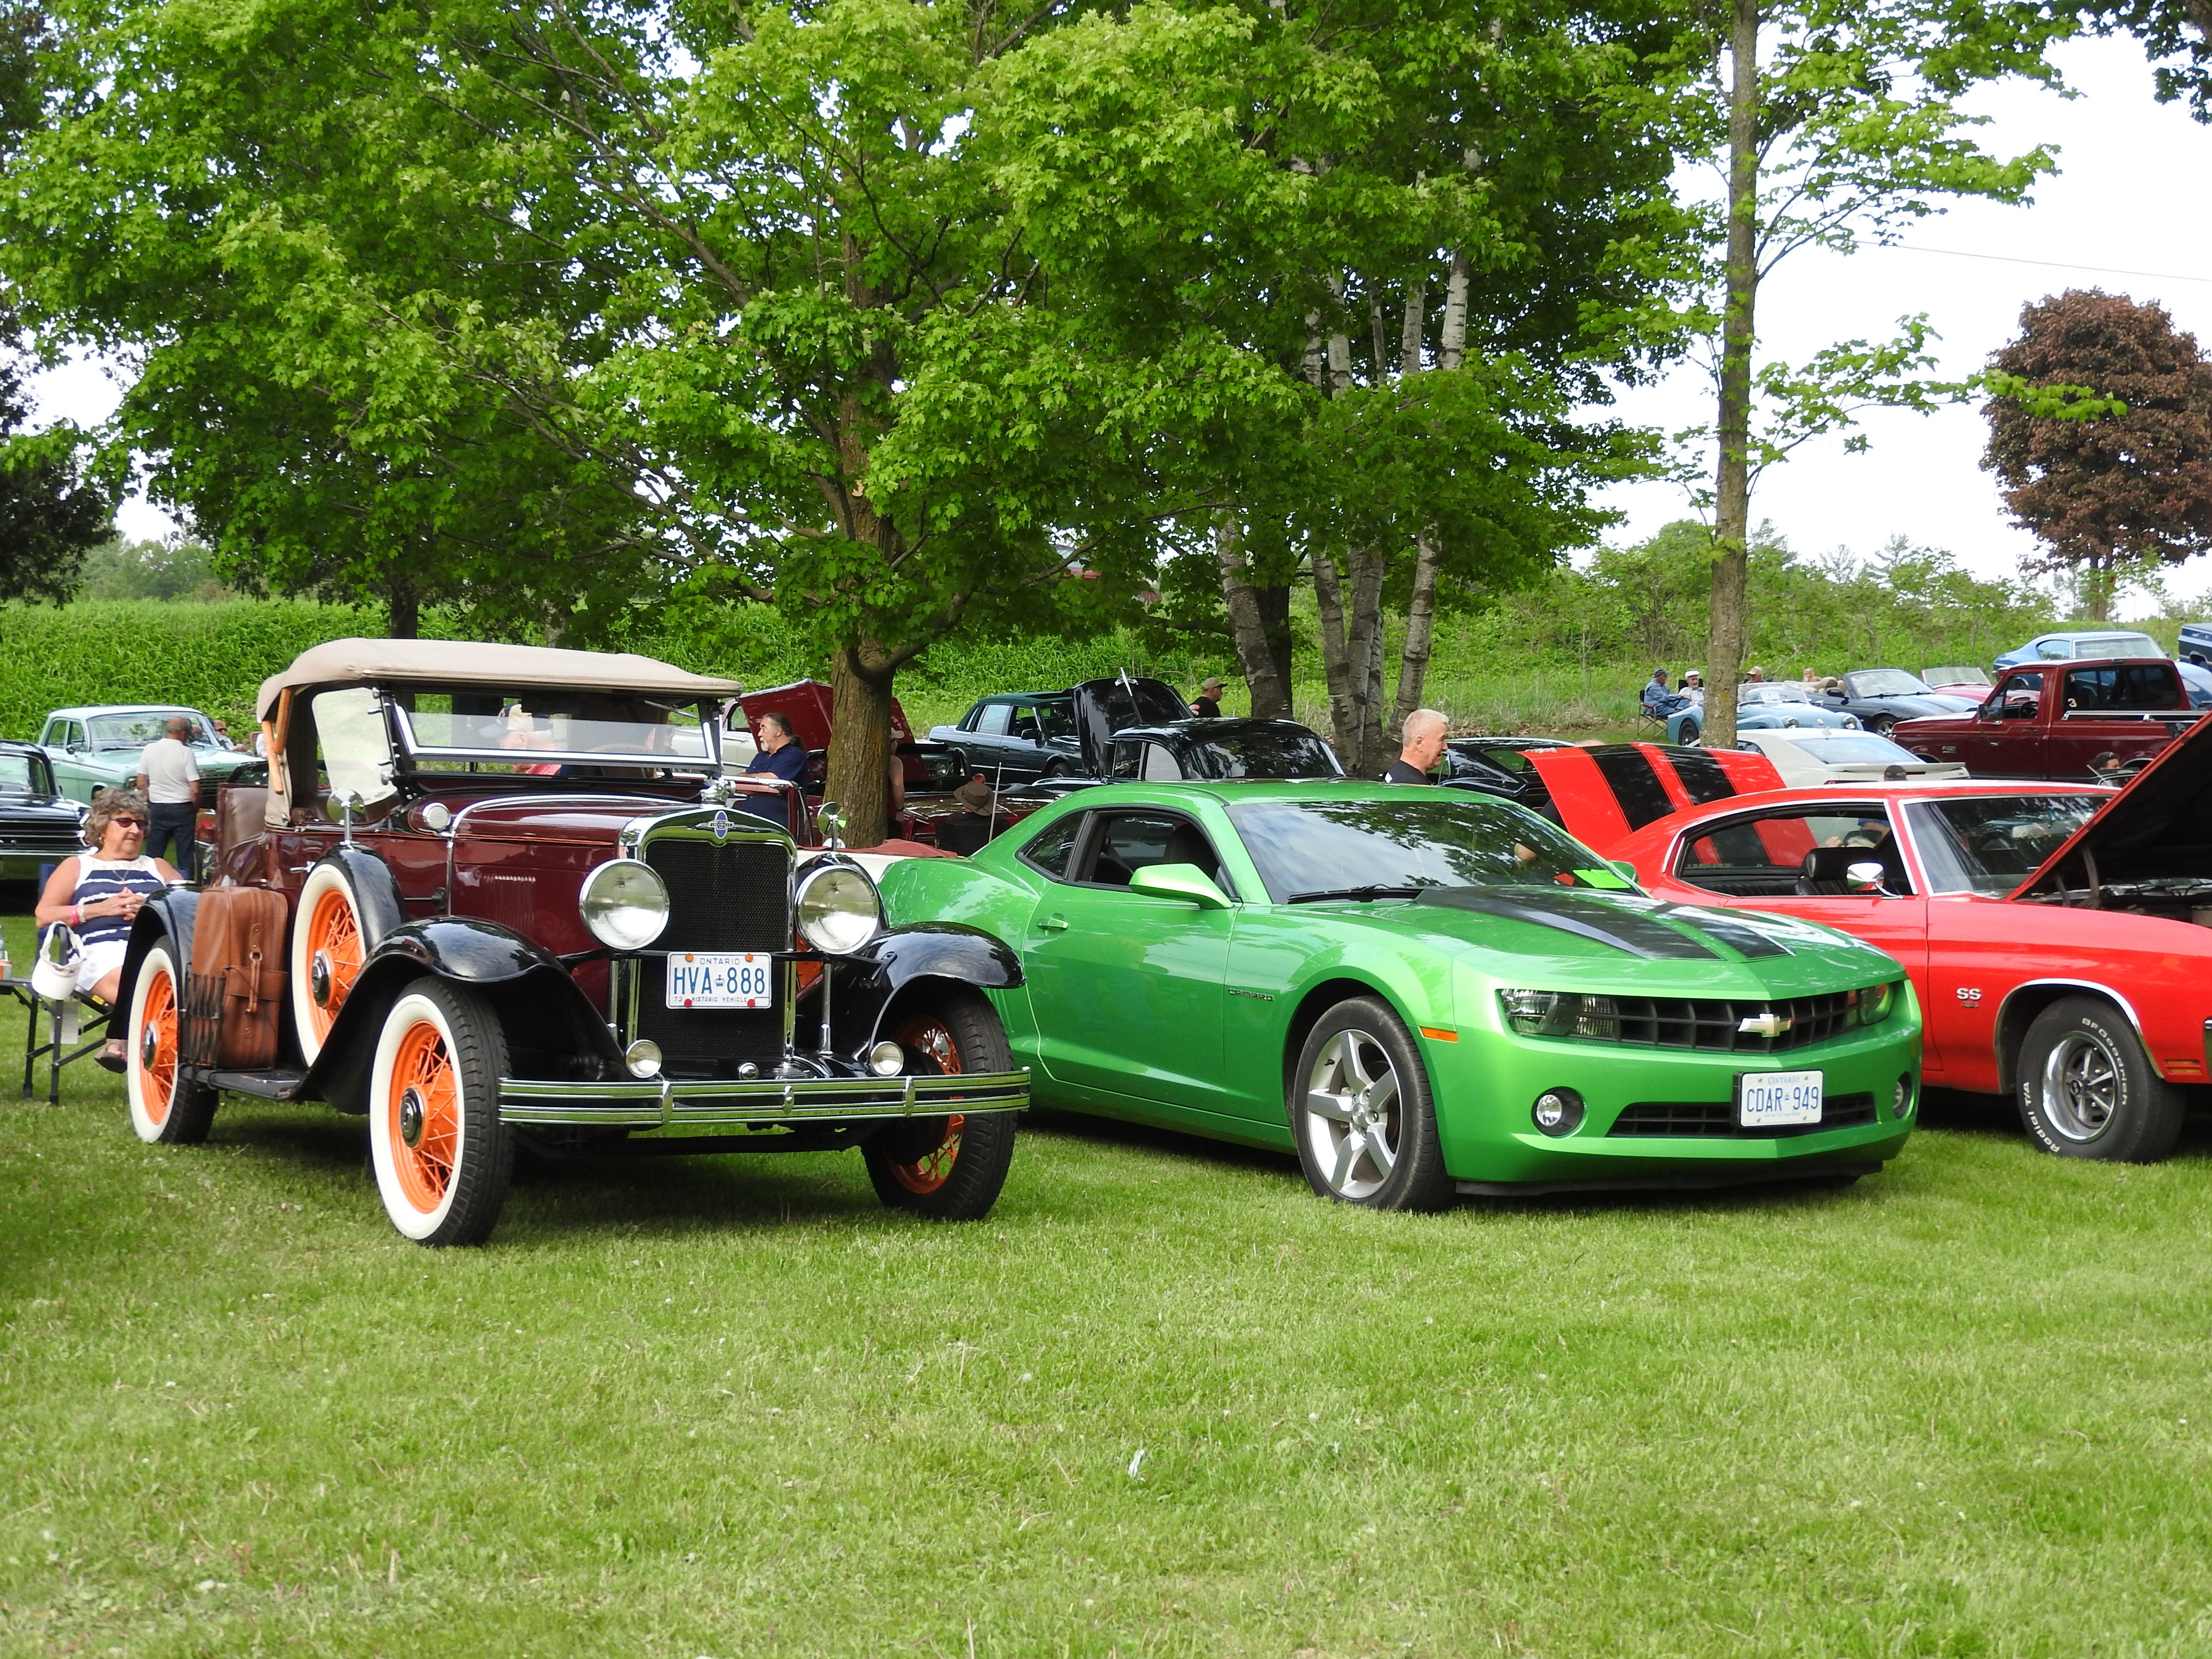 Bradblog.ca-Cruise Night at Paul English Lions Park